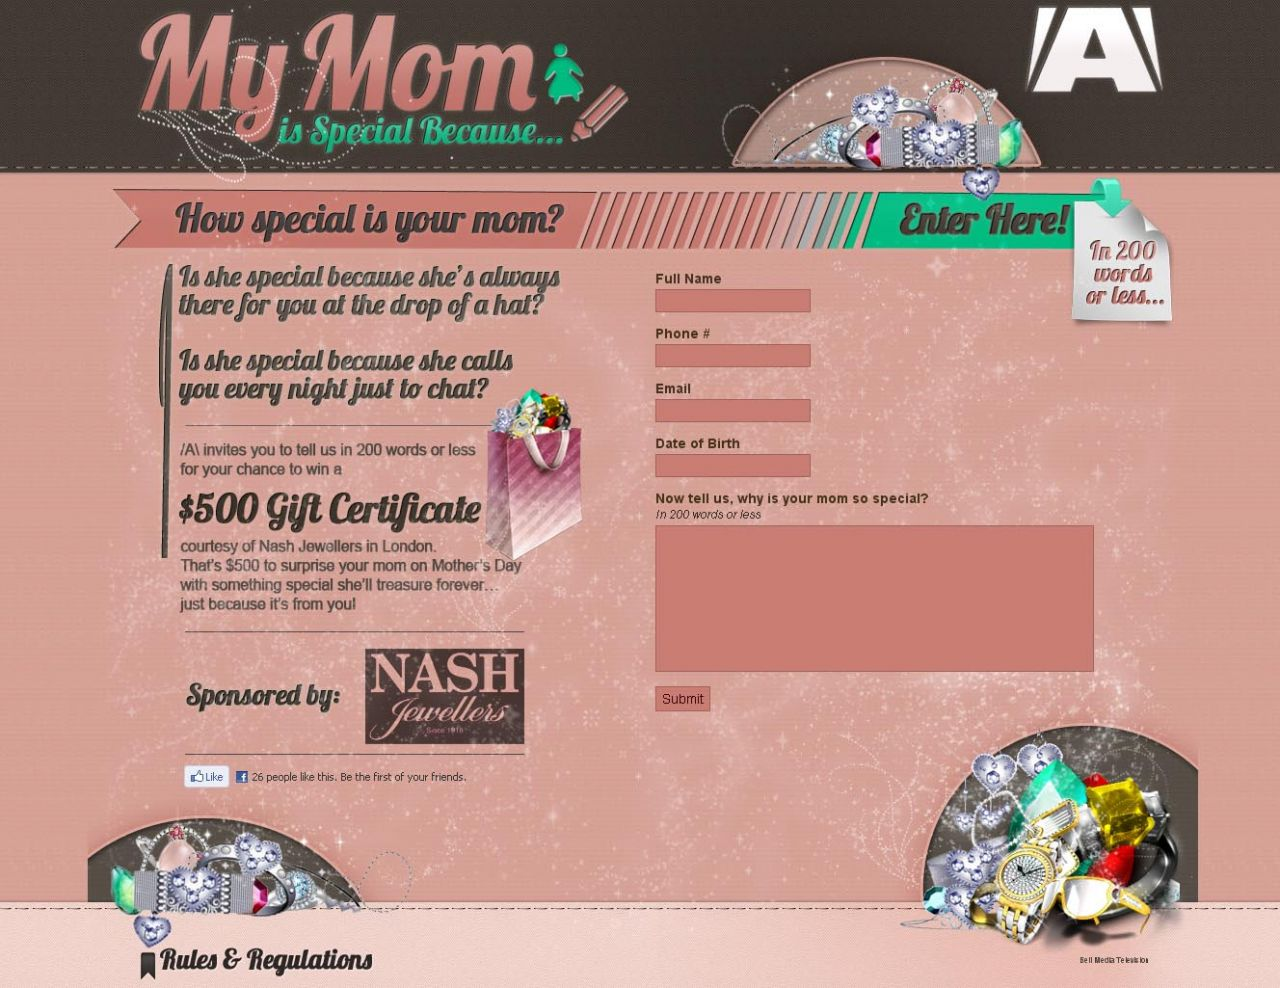 The online form for entering Nash Jewellers Mother's Day essay contest